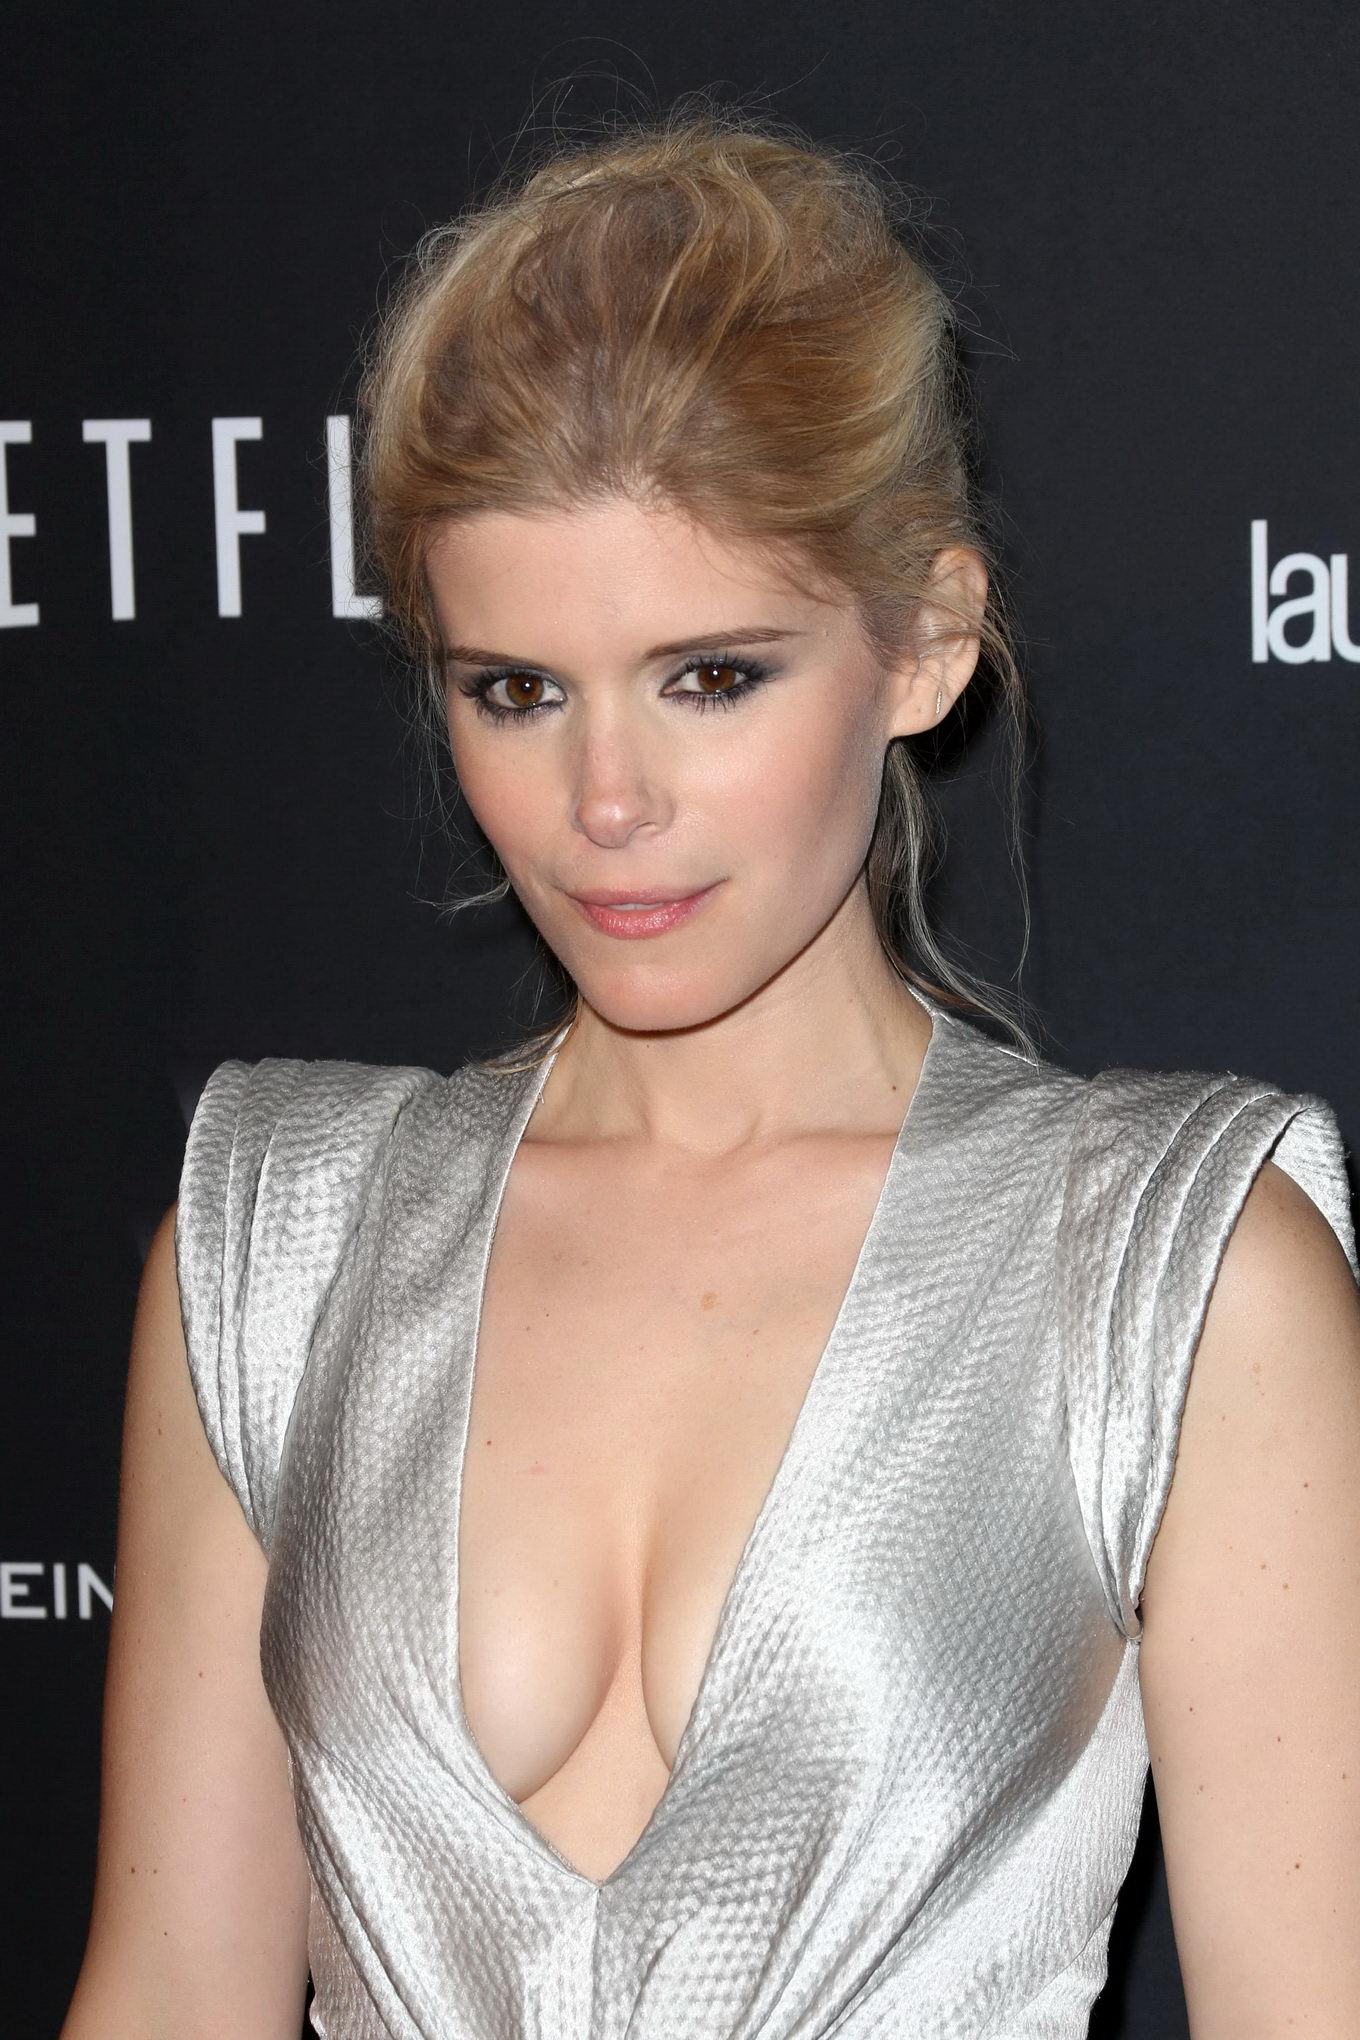 Kate-Mara-cleavage-in-Fantastic-Four